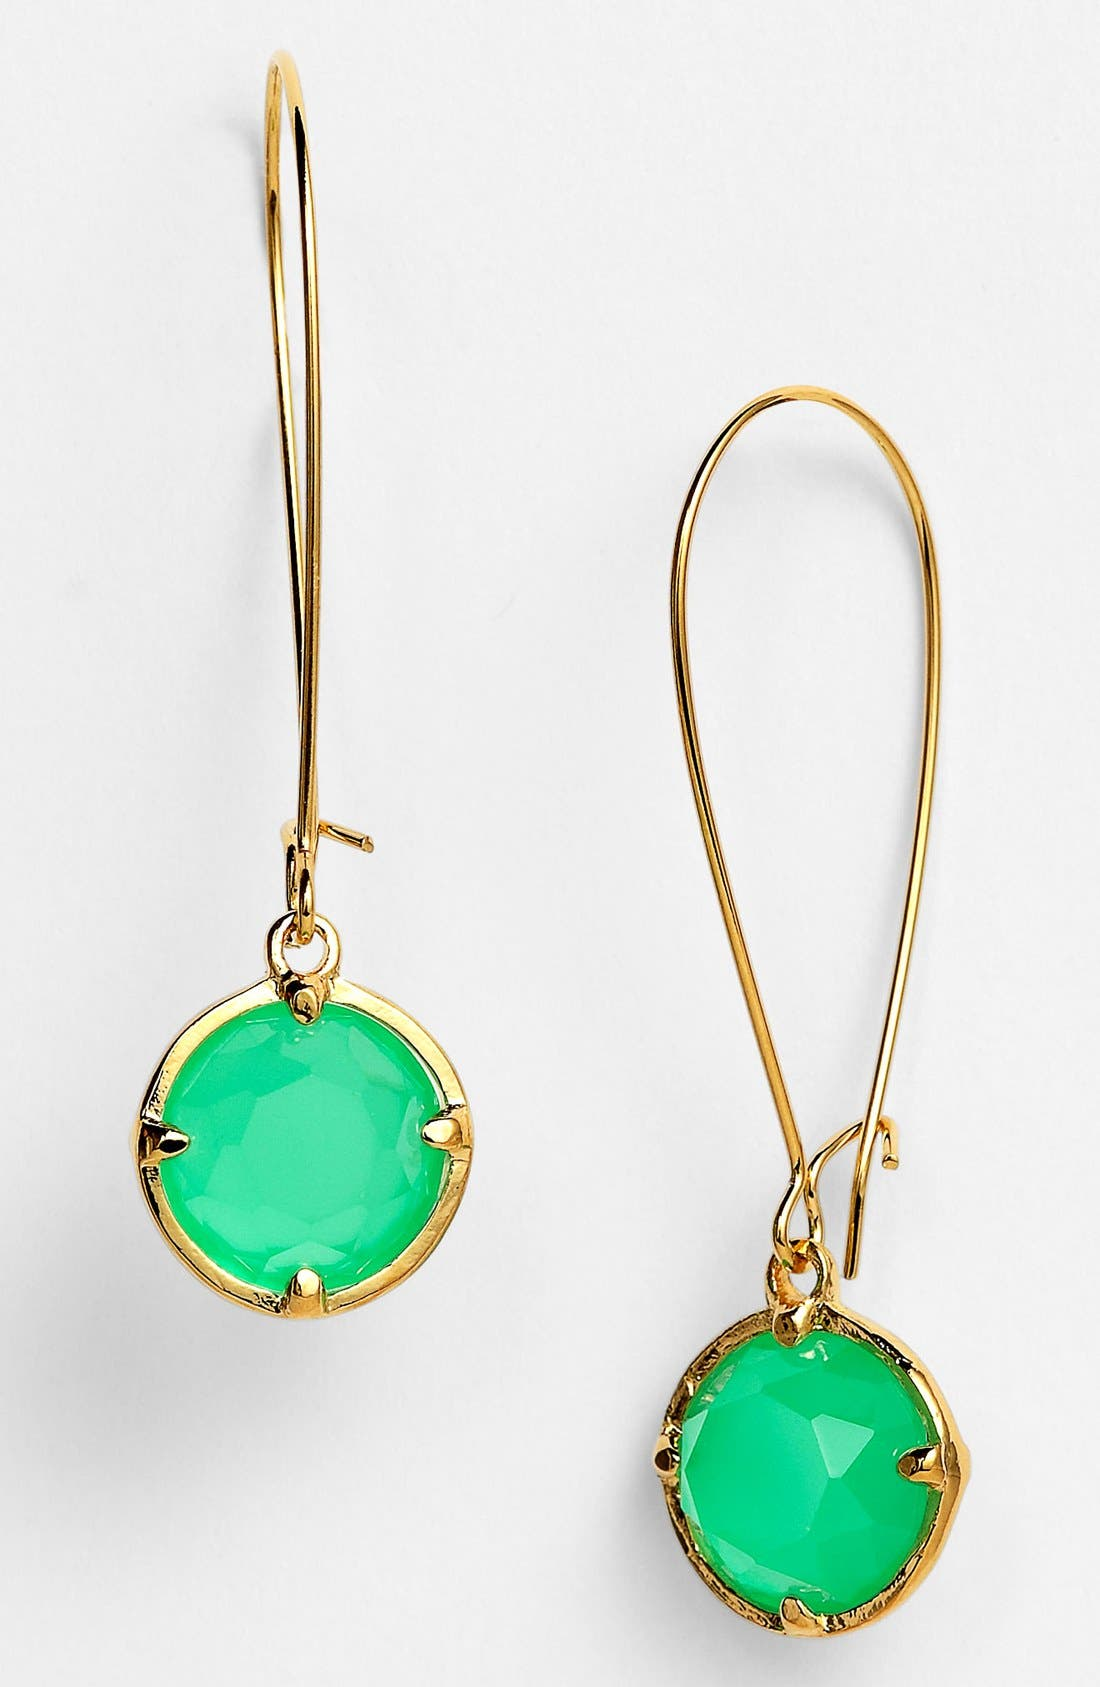 Main Image - kate spade new york drop earrings